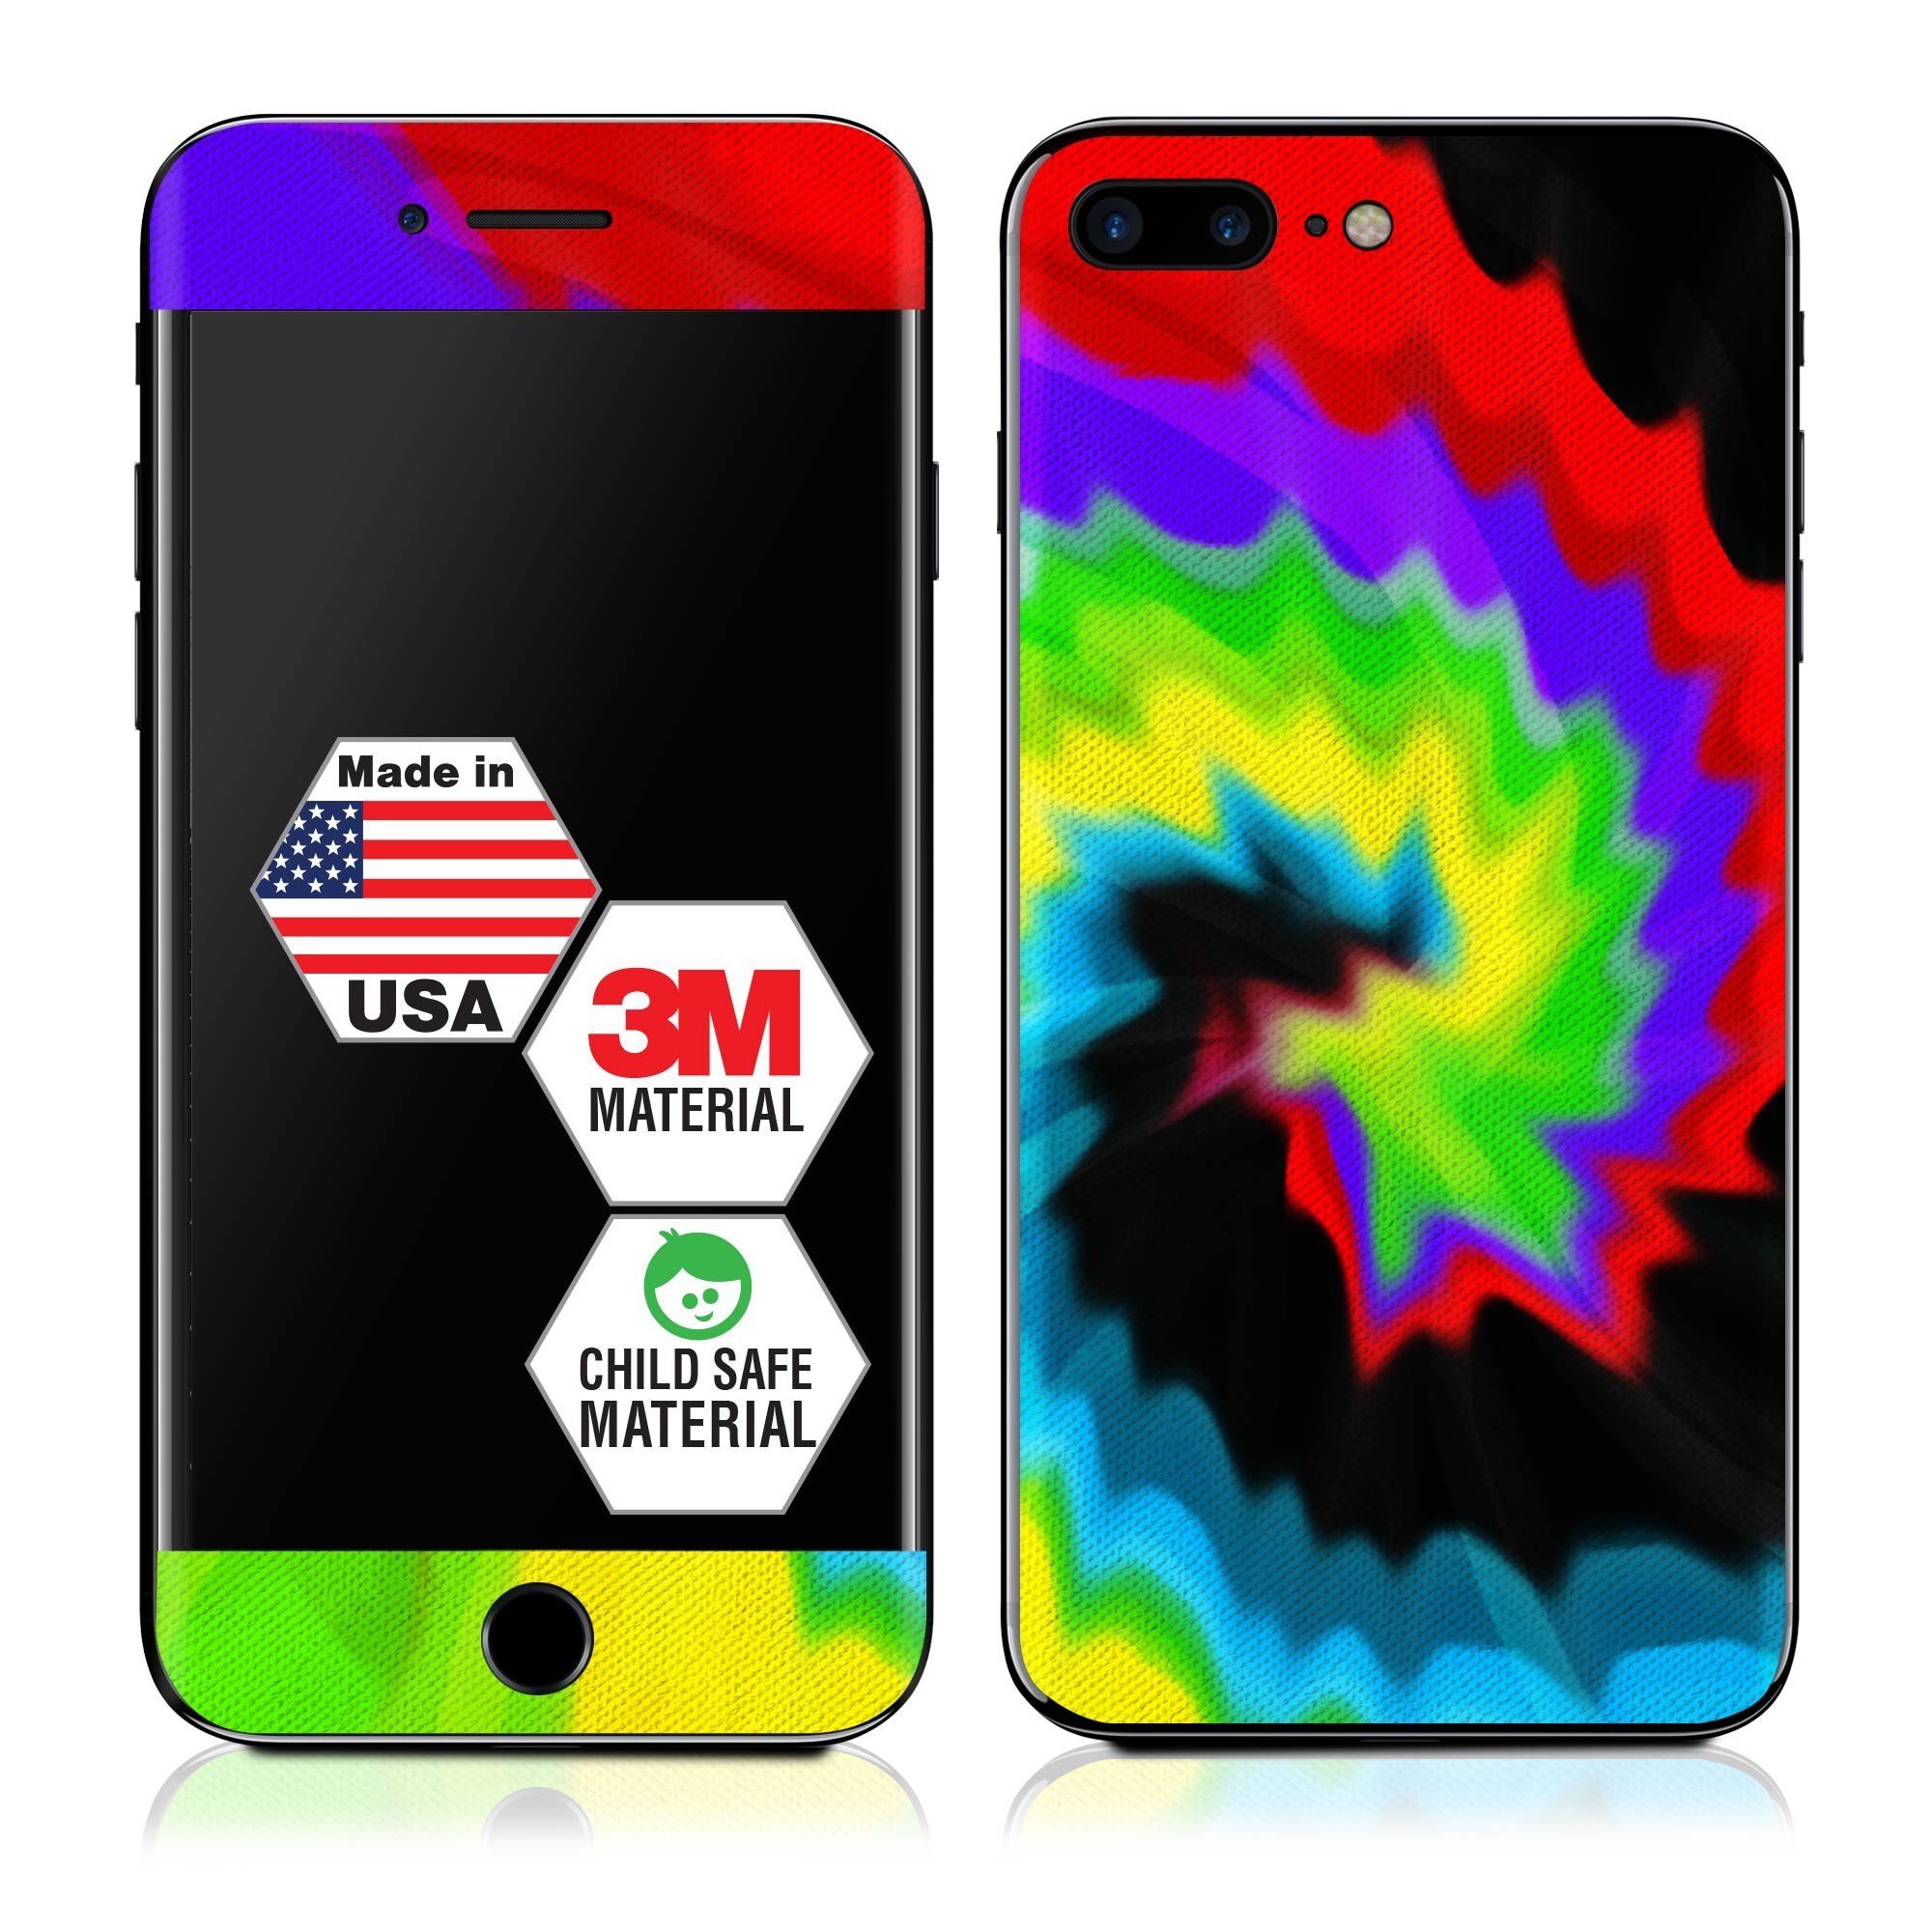 3m iphone 7 plus case